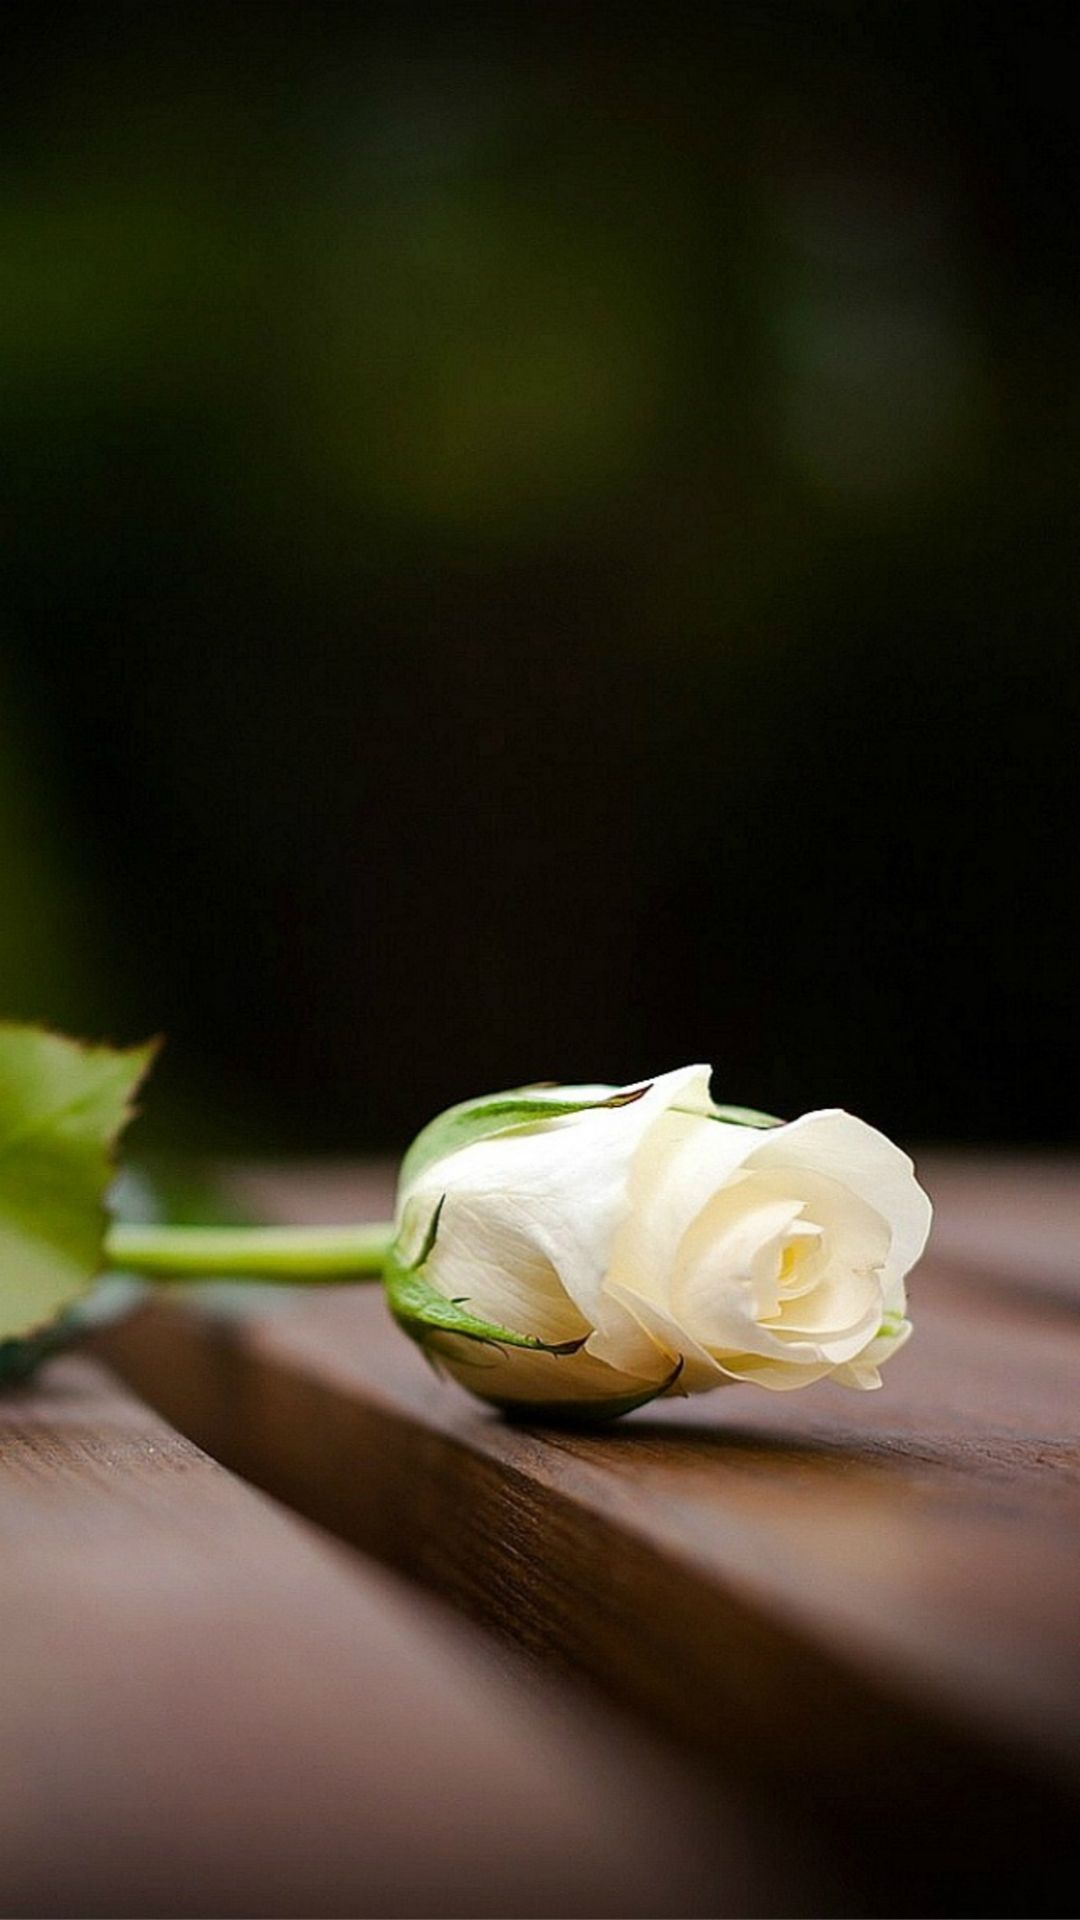 24 White Rose Iphone Wallpapers Wallpaperboat